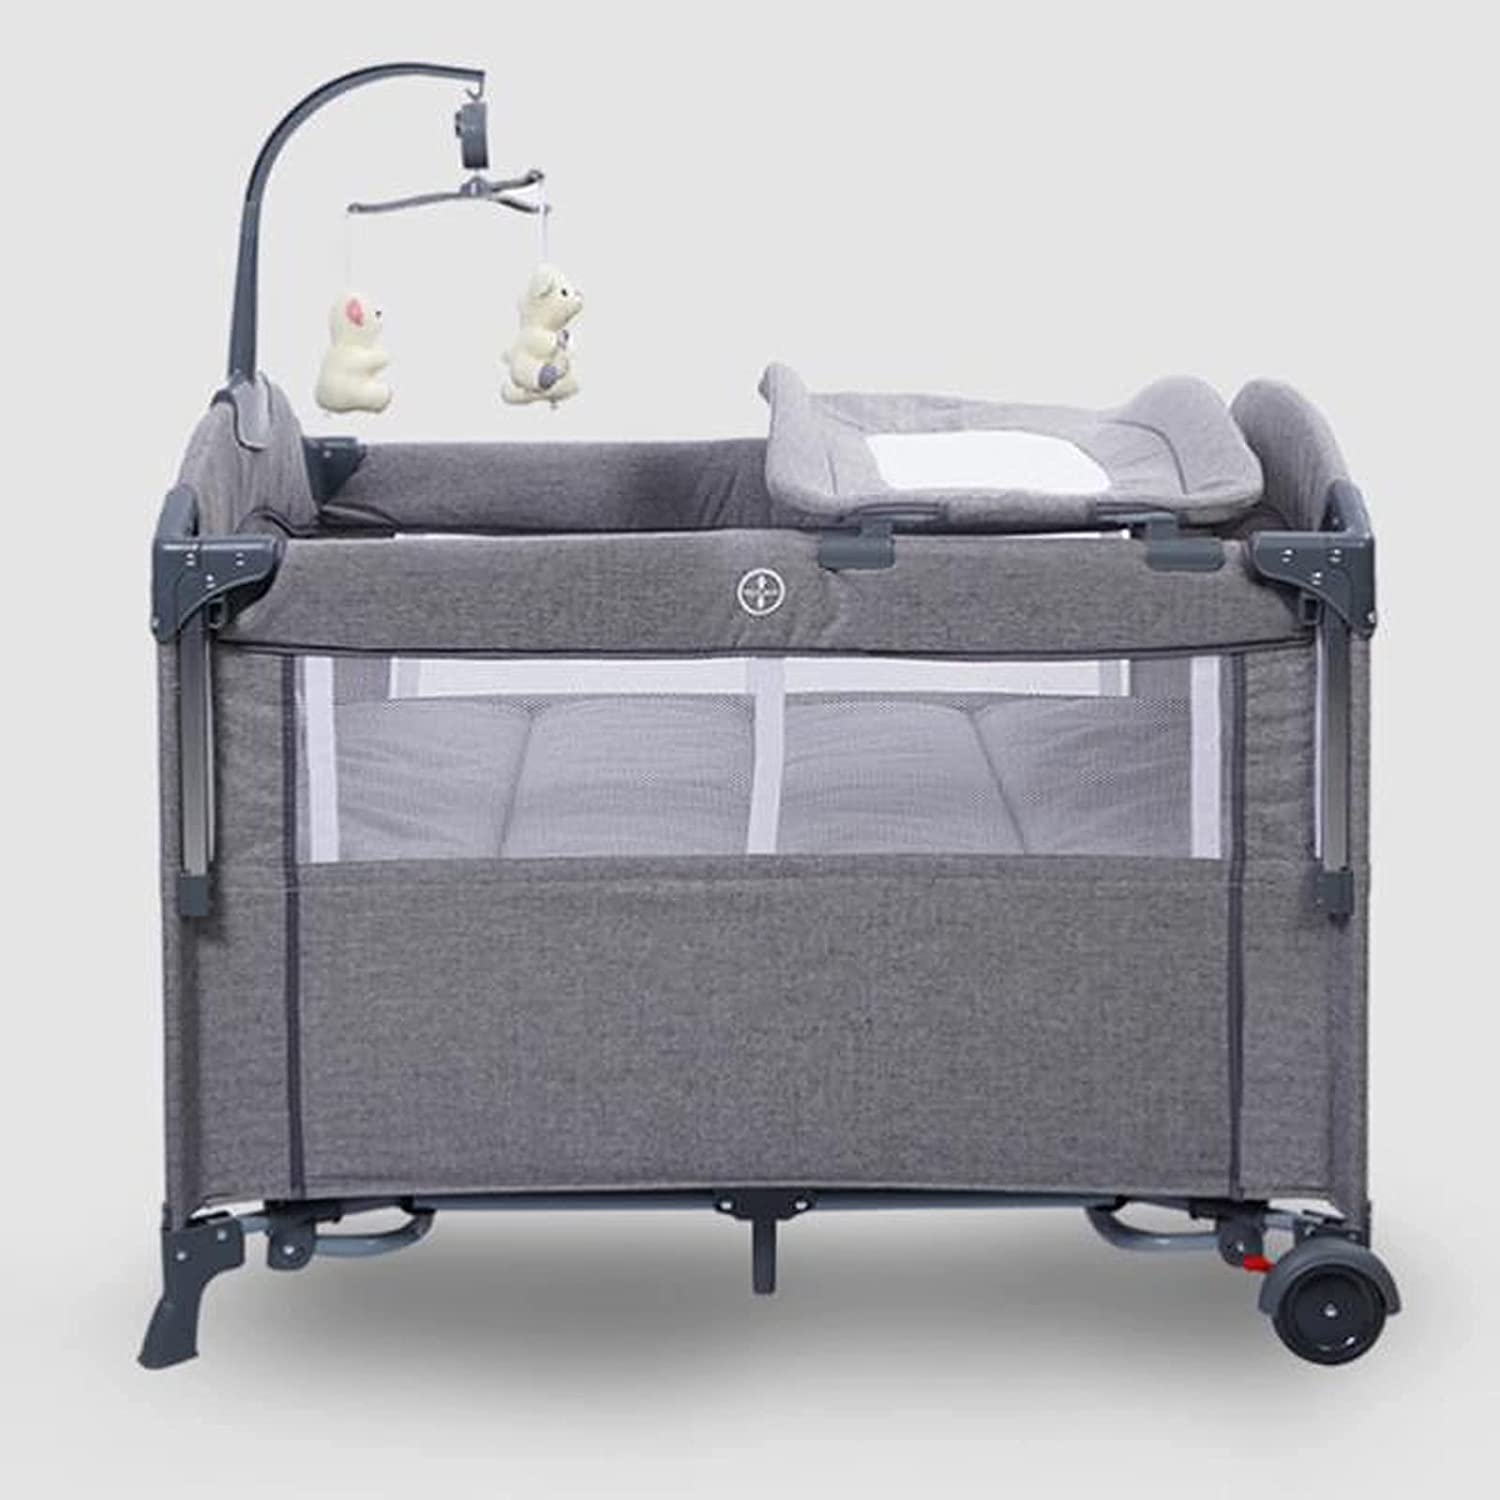 ZHZHUANG Baby Bed Large discharge sale Multiple Max 85% OFF Functions Portable Folding B Cot